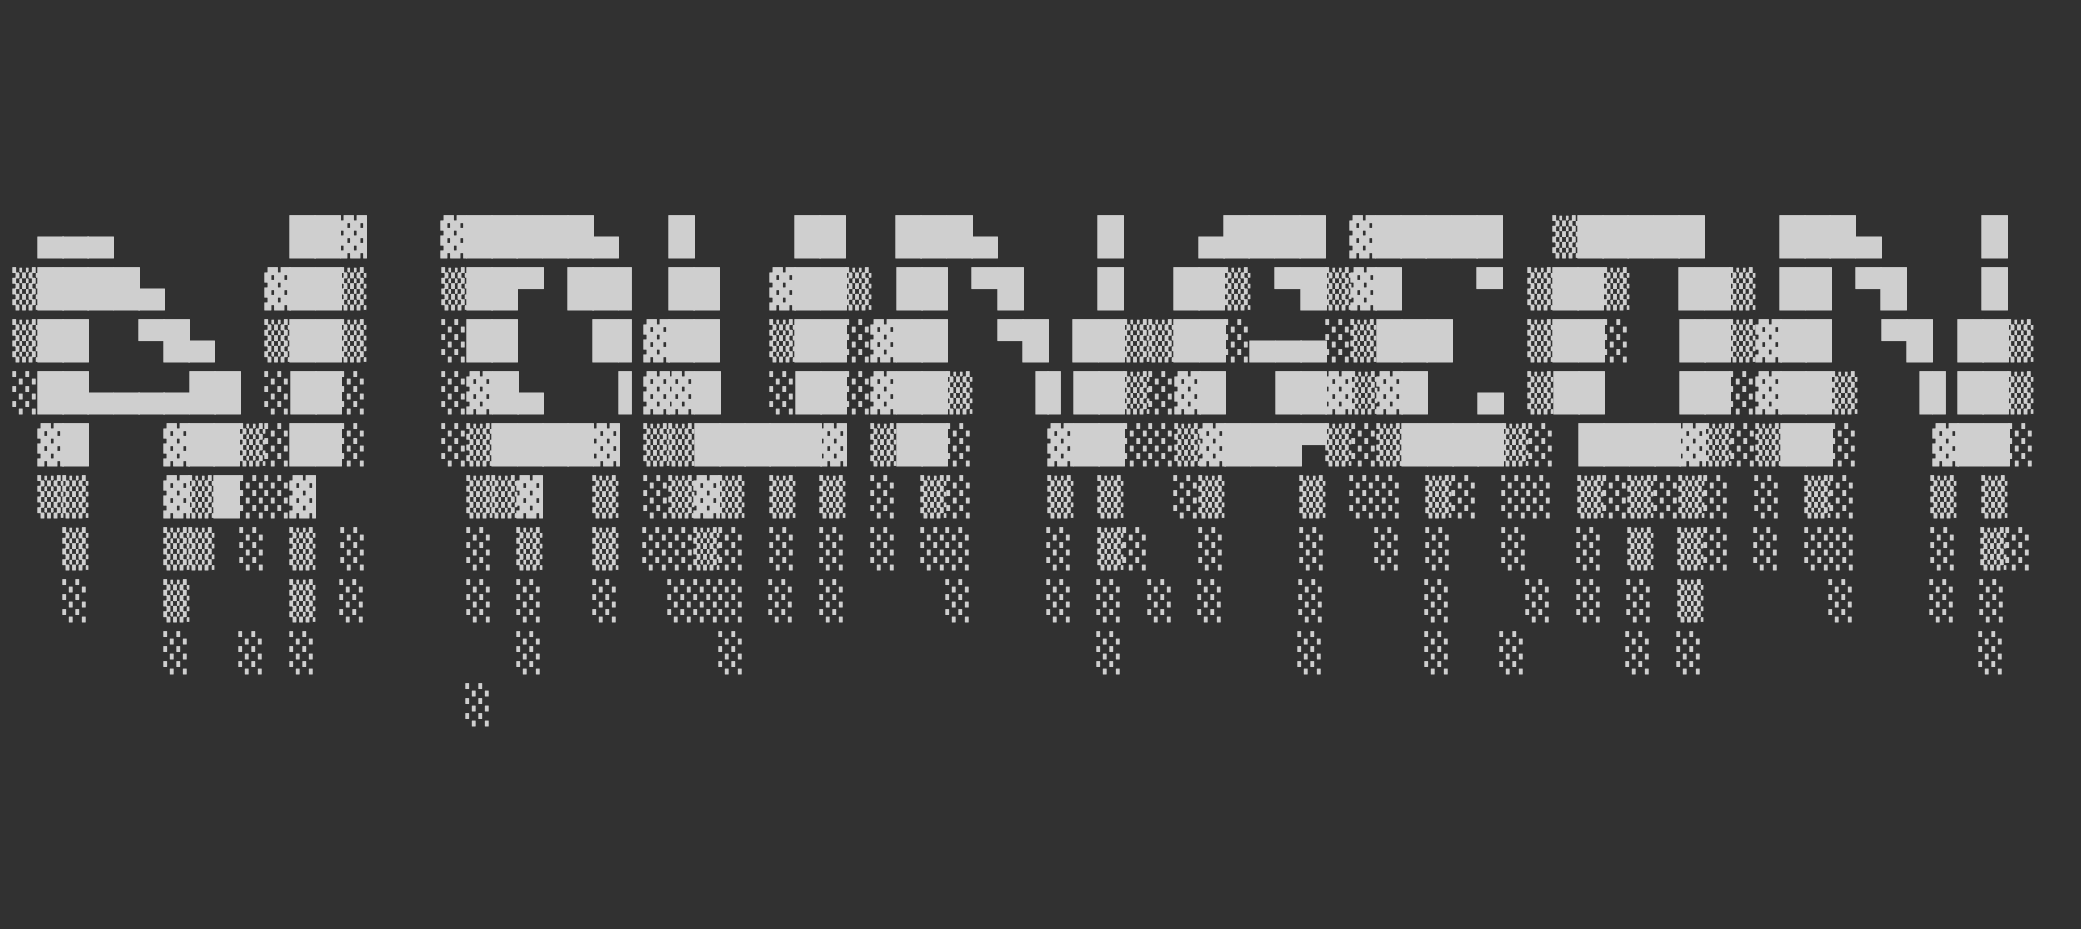 AI driven text adventure game give players true non-linear gameplay